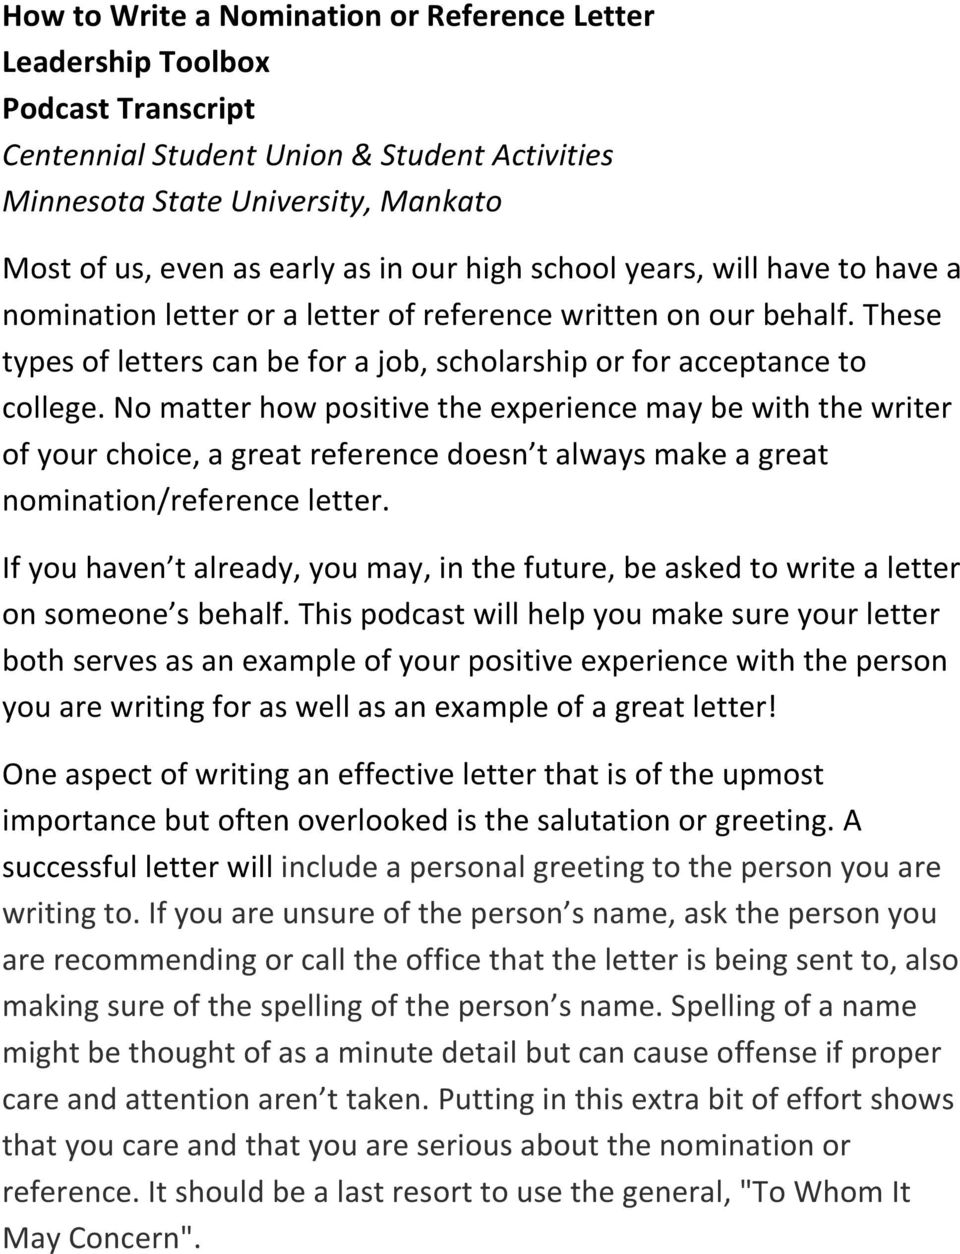 How To Start A Letter To Someone.How To Write A Nomination Or Reference Letter Leadership